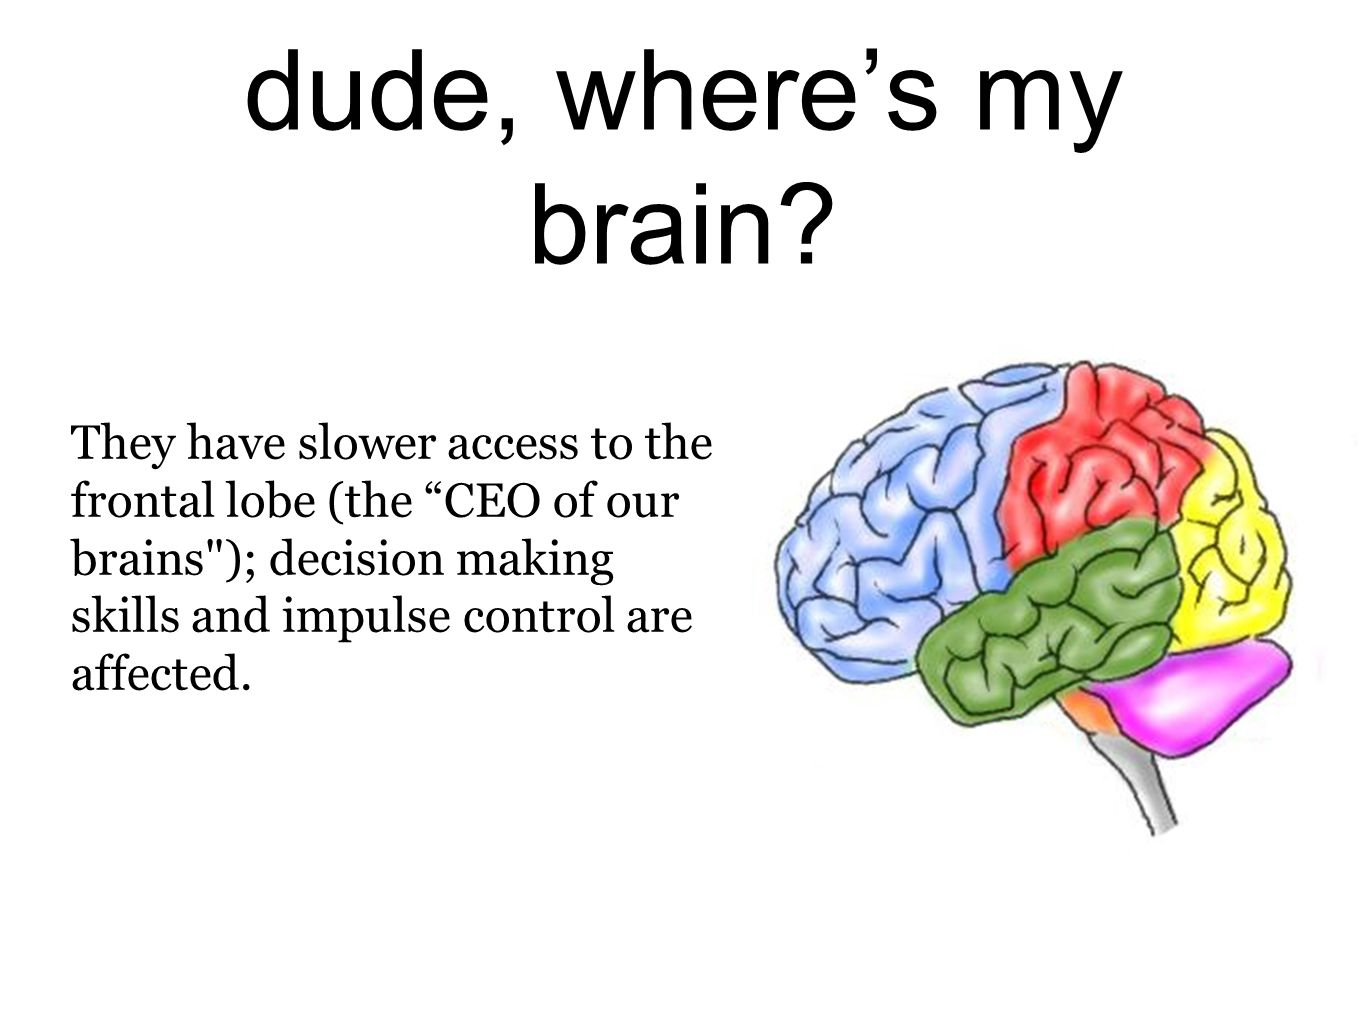 dude, wheres my brain? They have slower access to the frontal lobe (the CEO of our brains